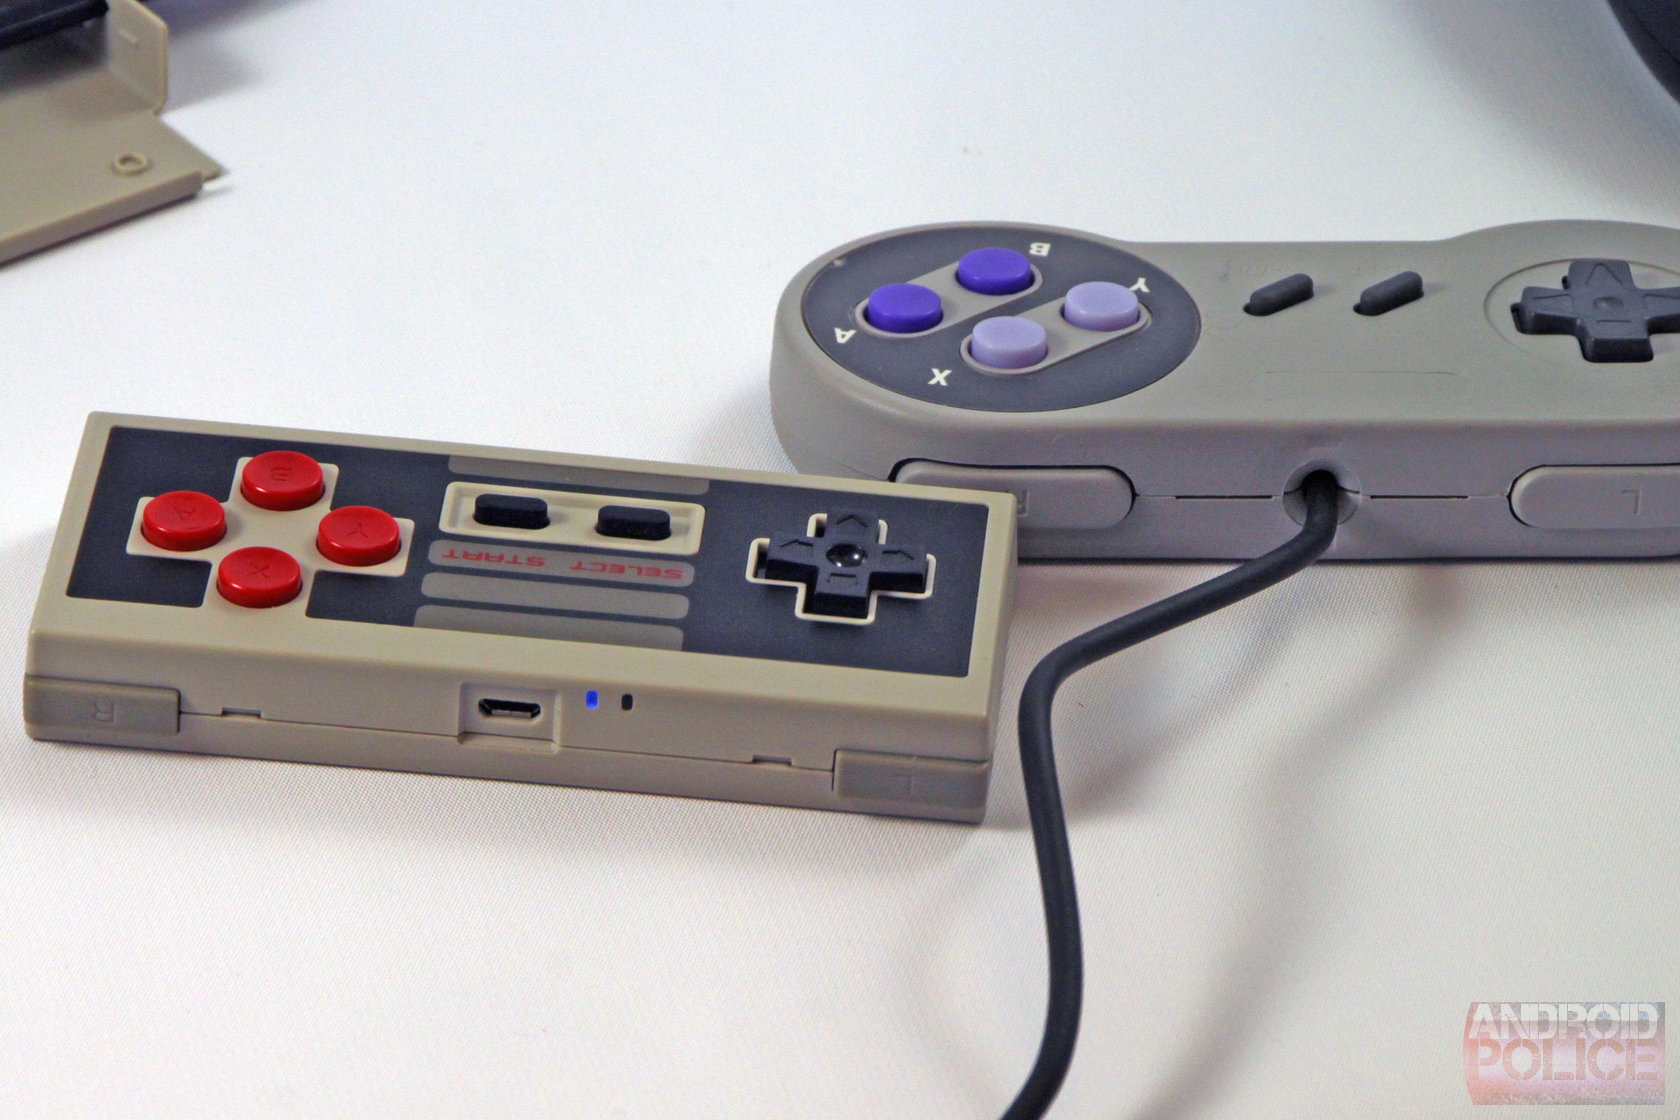 8BitDo NES30 Bluetooth Controller Review: Everything Old Is New Again